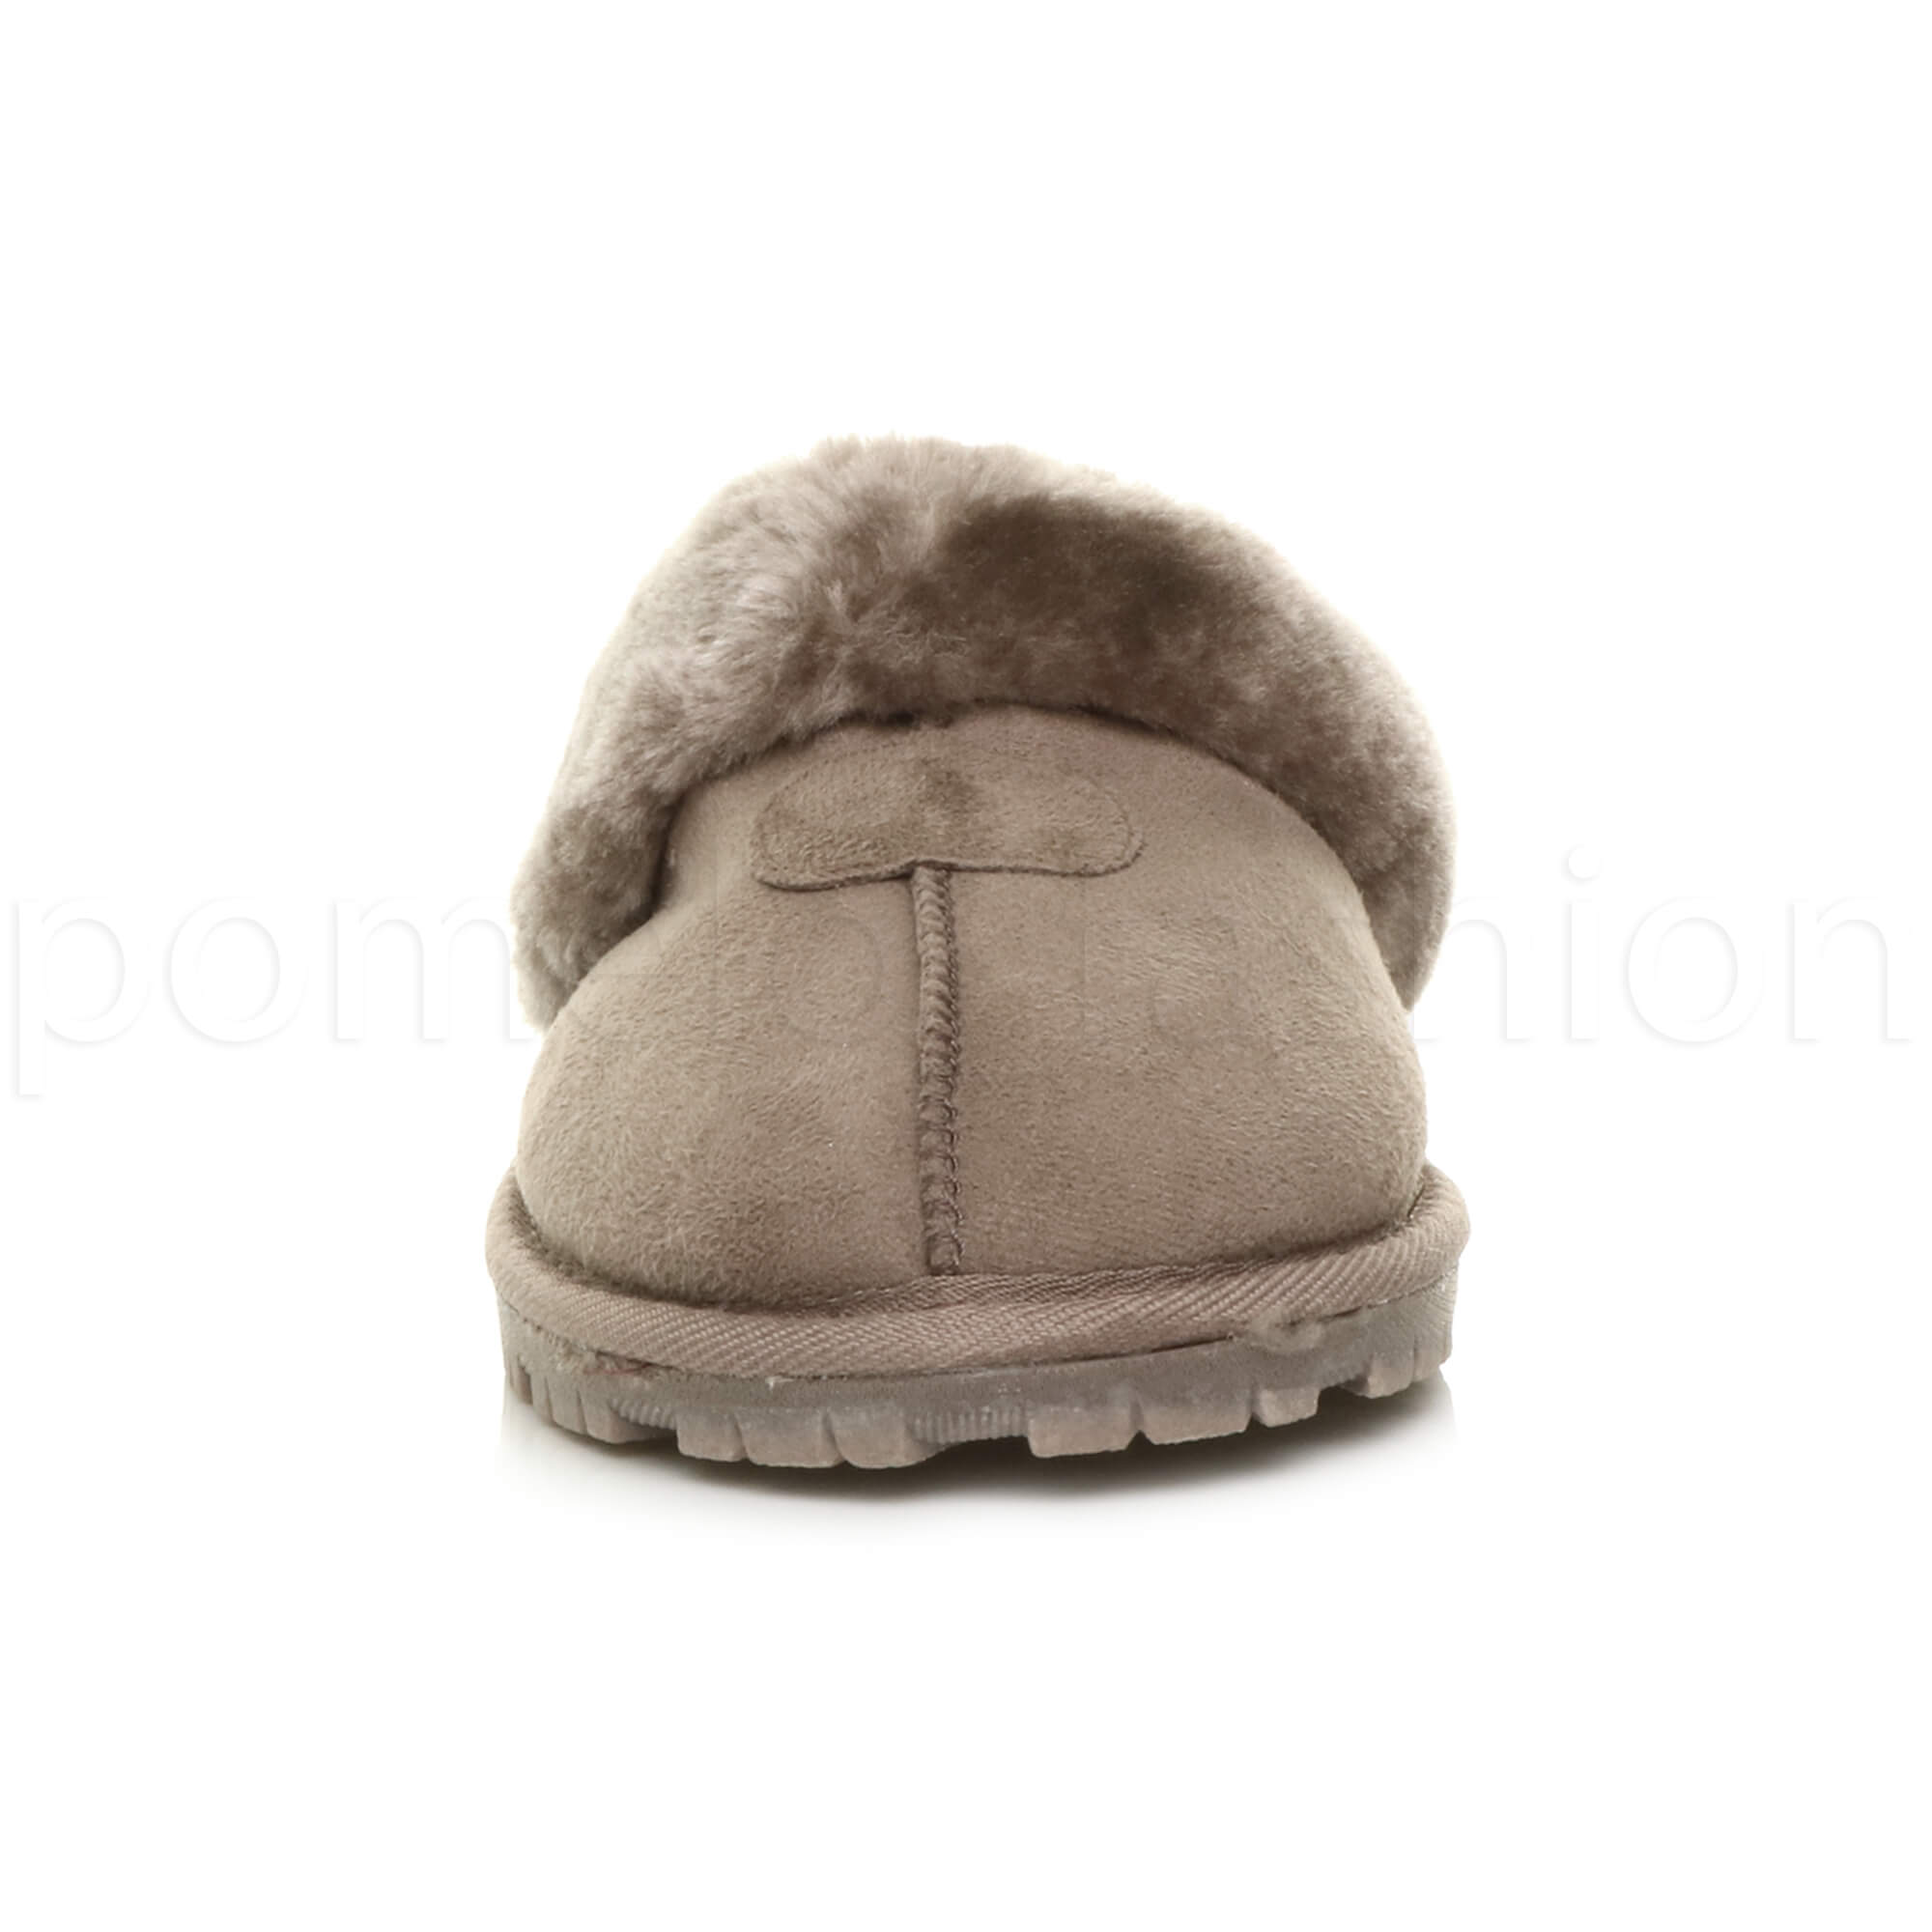 WOMENS-LADIES-FLAT-FUR-LINED-COMFORTABLE-WINTER-MULES-SLIPPERS-HOUSE-SHOES-SIZE thumbnail 56